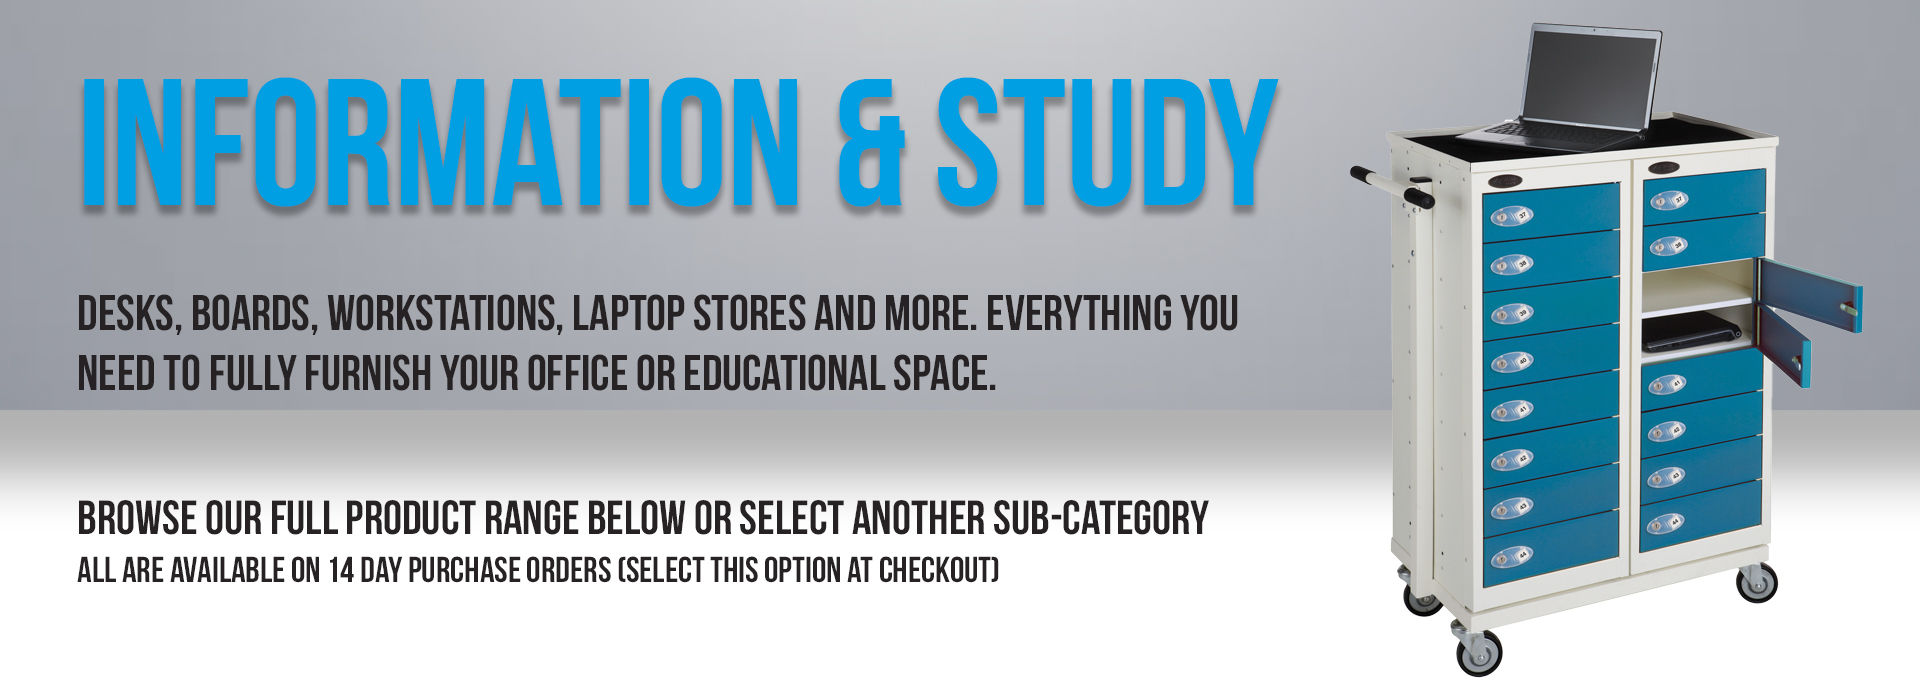 information-and-study-banner.jpg